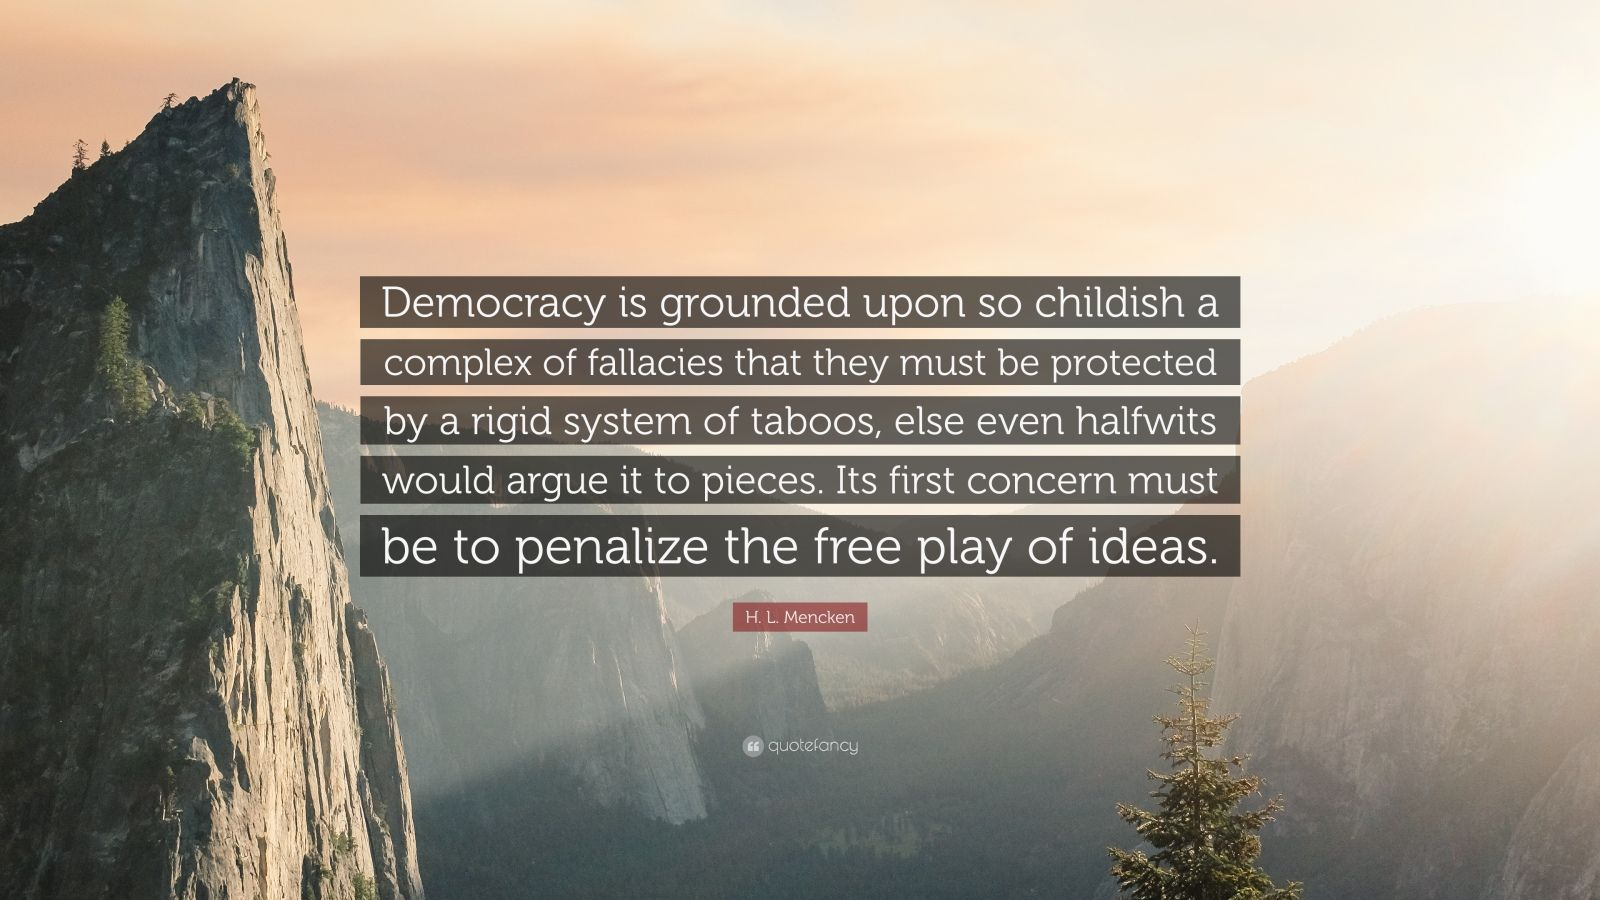 """H. L. Mencken Quote: """"Democracy is grounded upon so childish a complex of fallacies that they must be protected by a rigid system of taboos, else even halfwits would argue it to pieces. Its first concern must be to penalize the free play of ideas."""""""